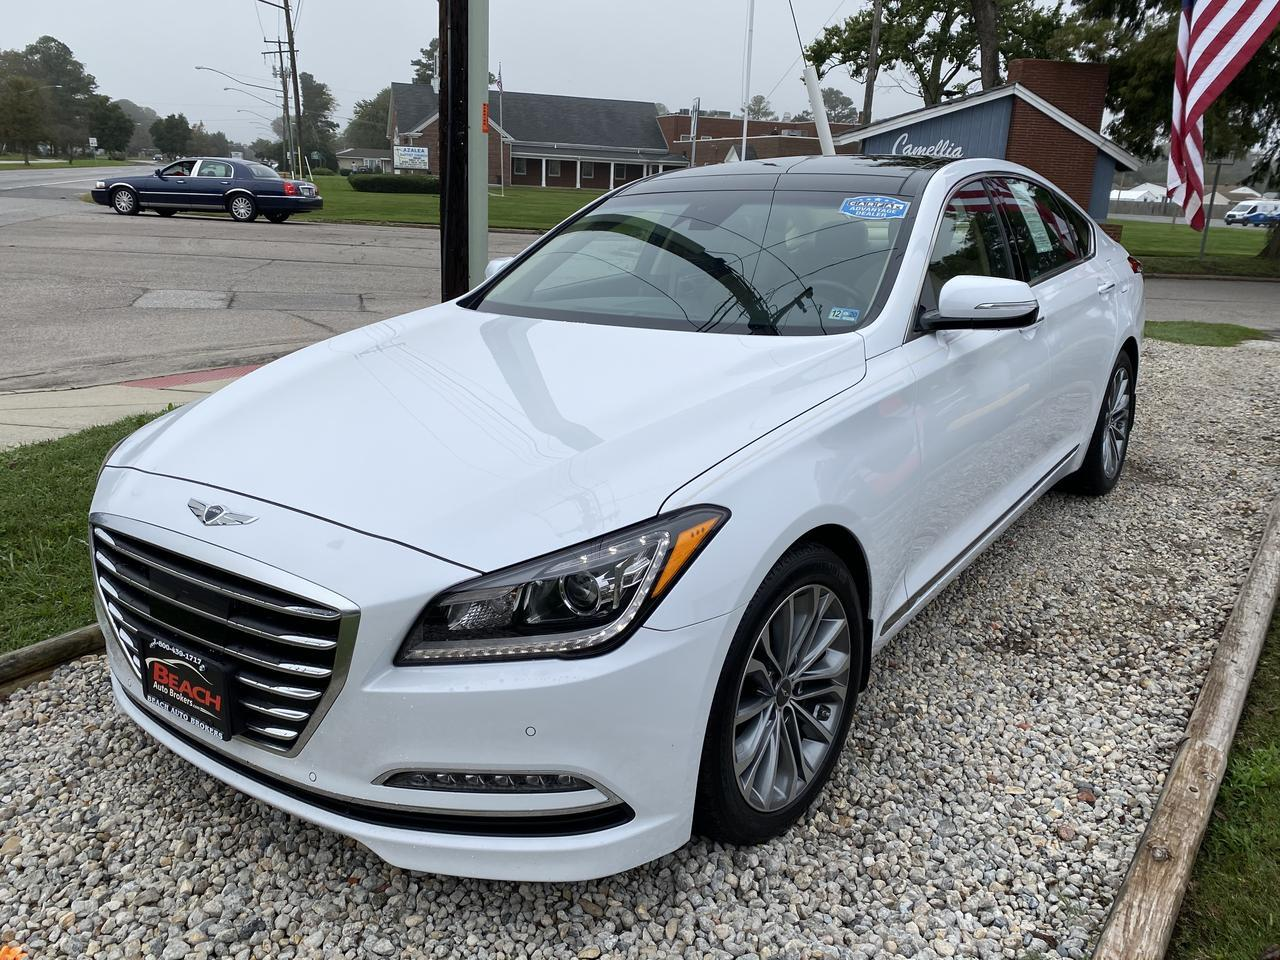 2017 GENESIS G80 WARRANTY, LEATHER, PANO ROOF, HEATED/COOLED SEATS, NAV, BLUETOOTH, CLEAN CARFAX! Norfolk VA